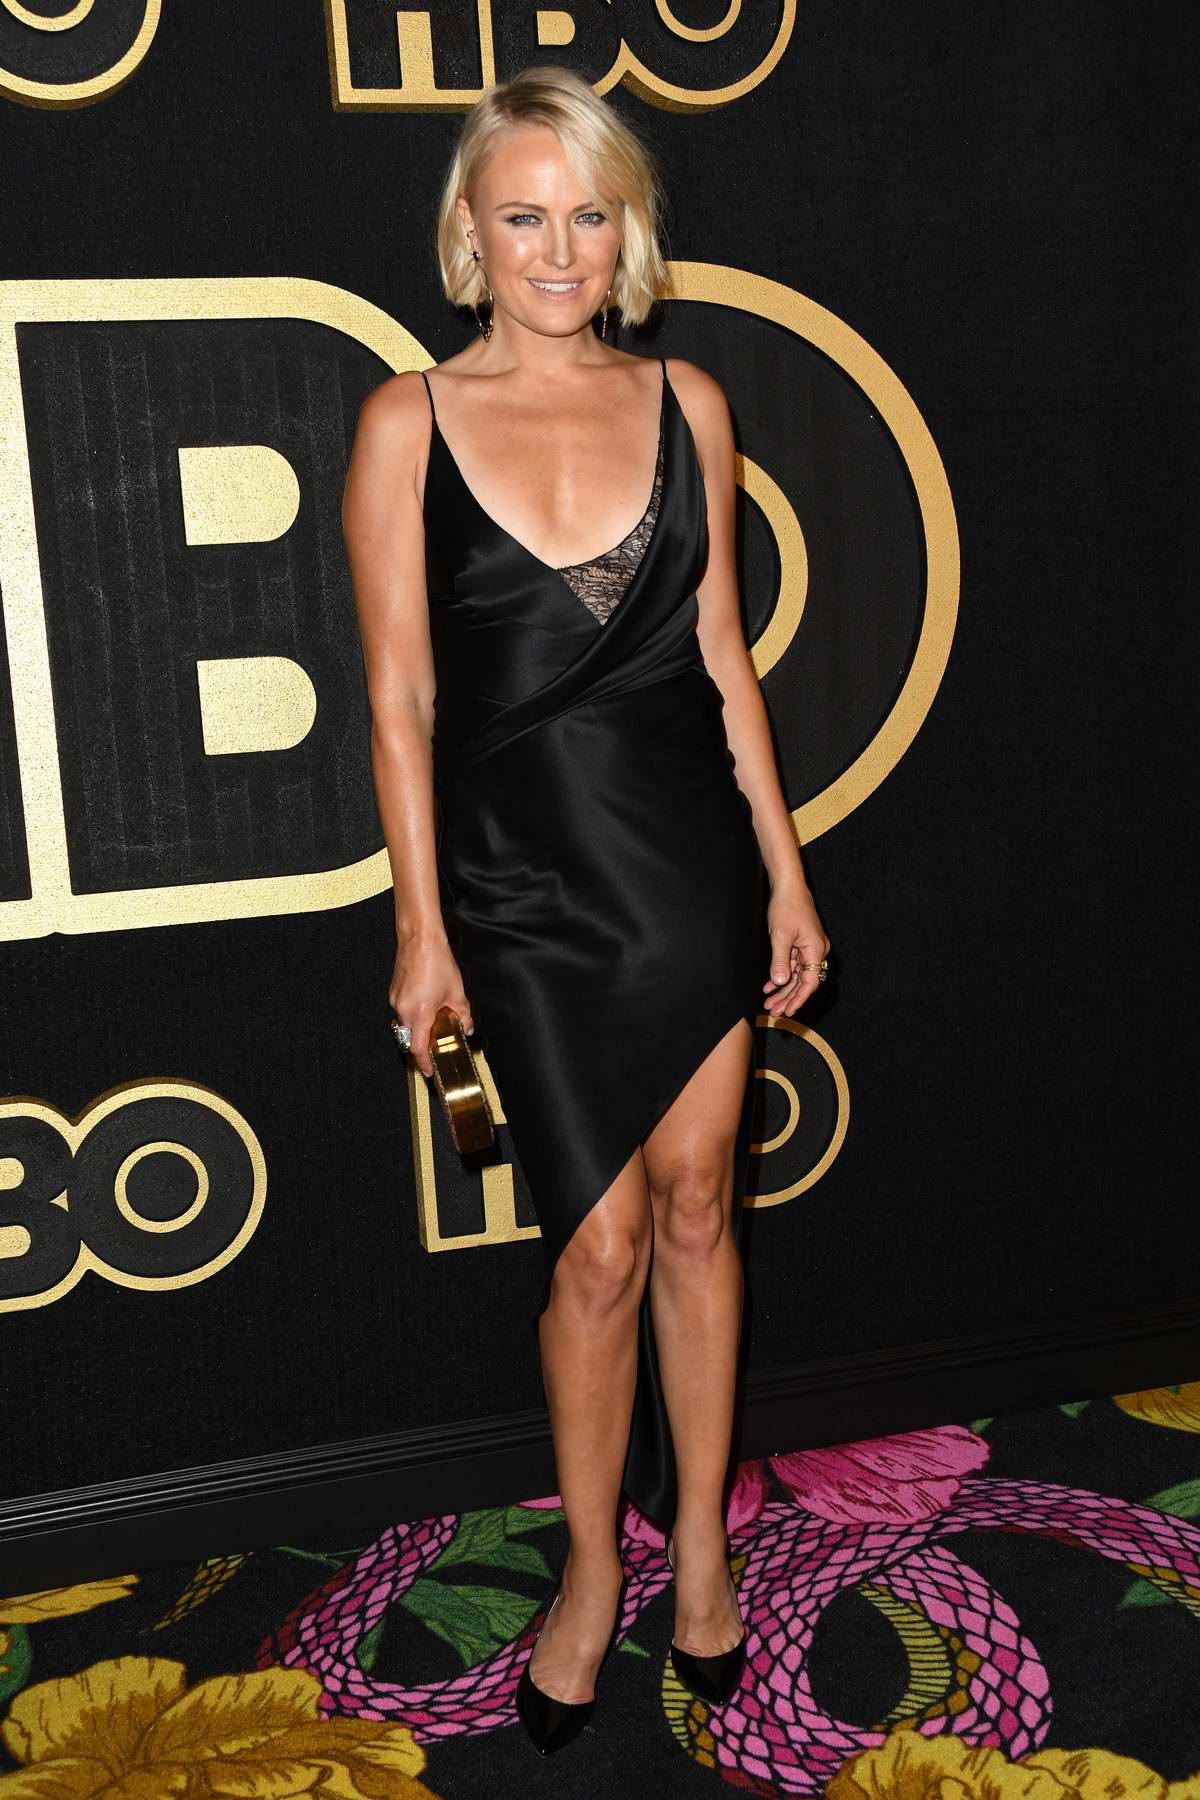 Malin Akerman attends 70th Primetime Emmy Awards HBO party at the Pacific Design Center in Los Angeles